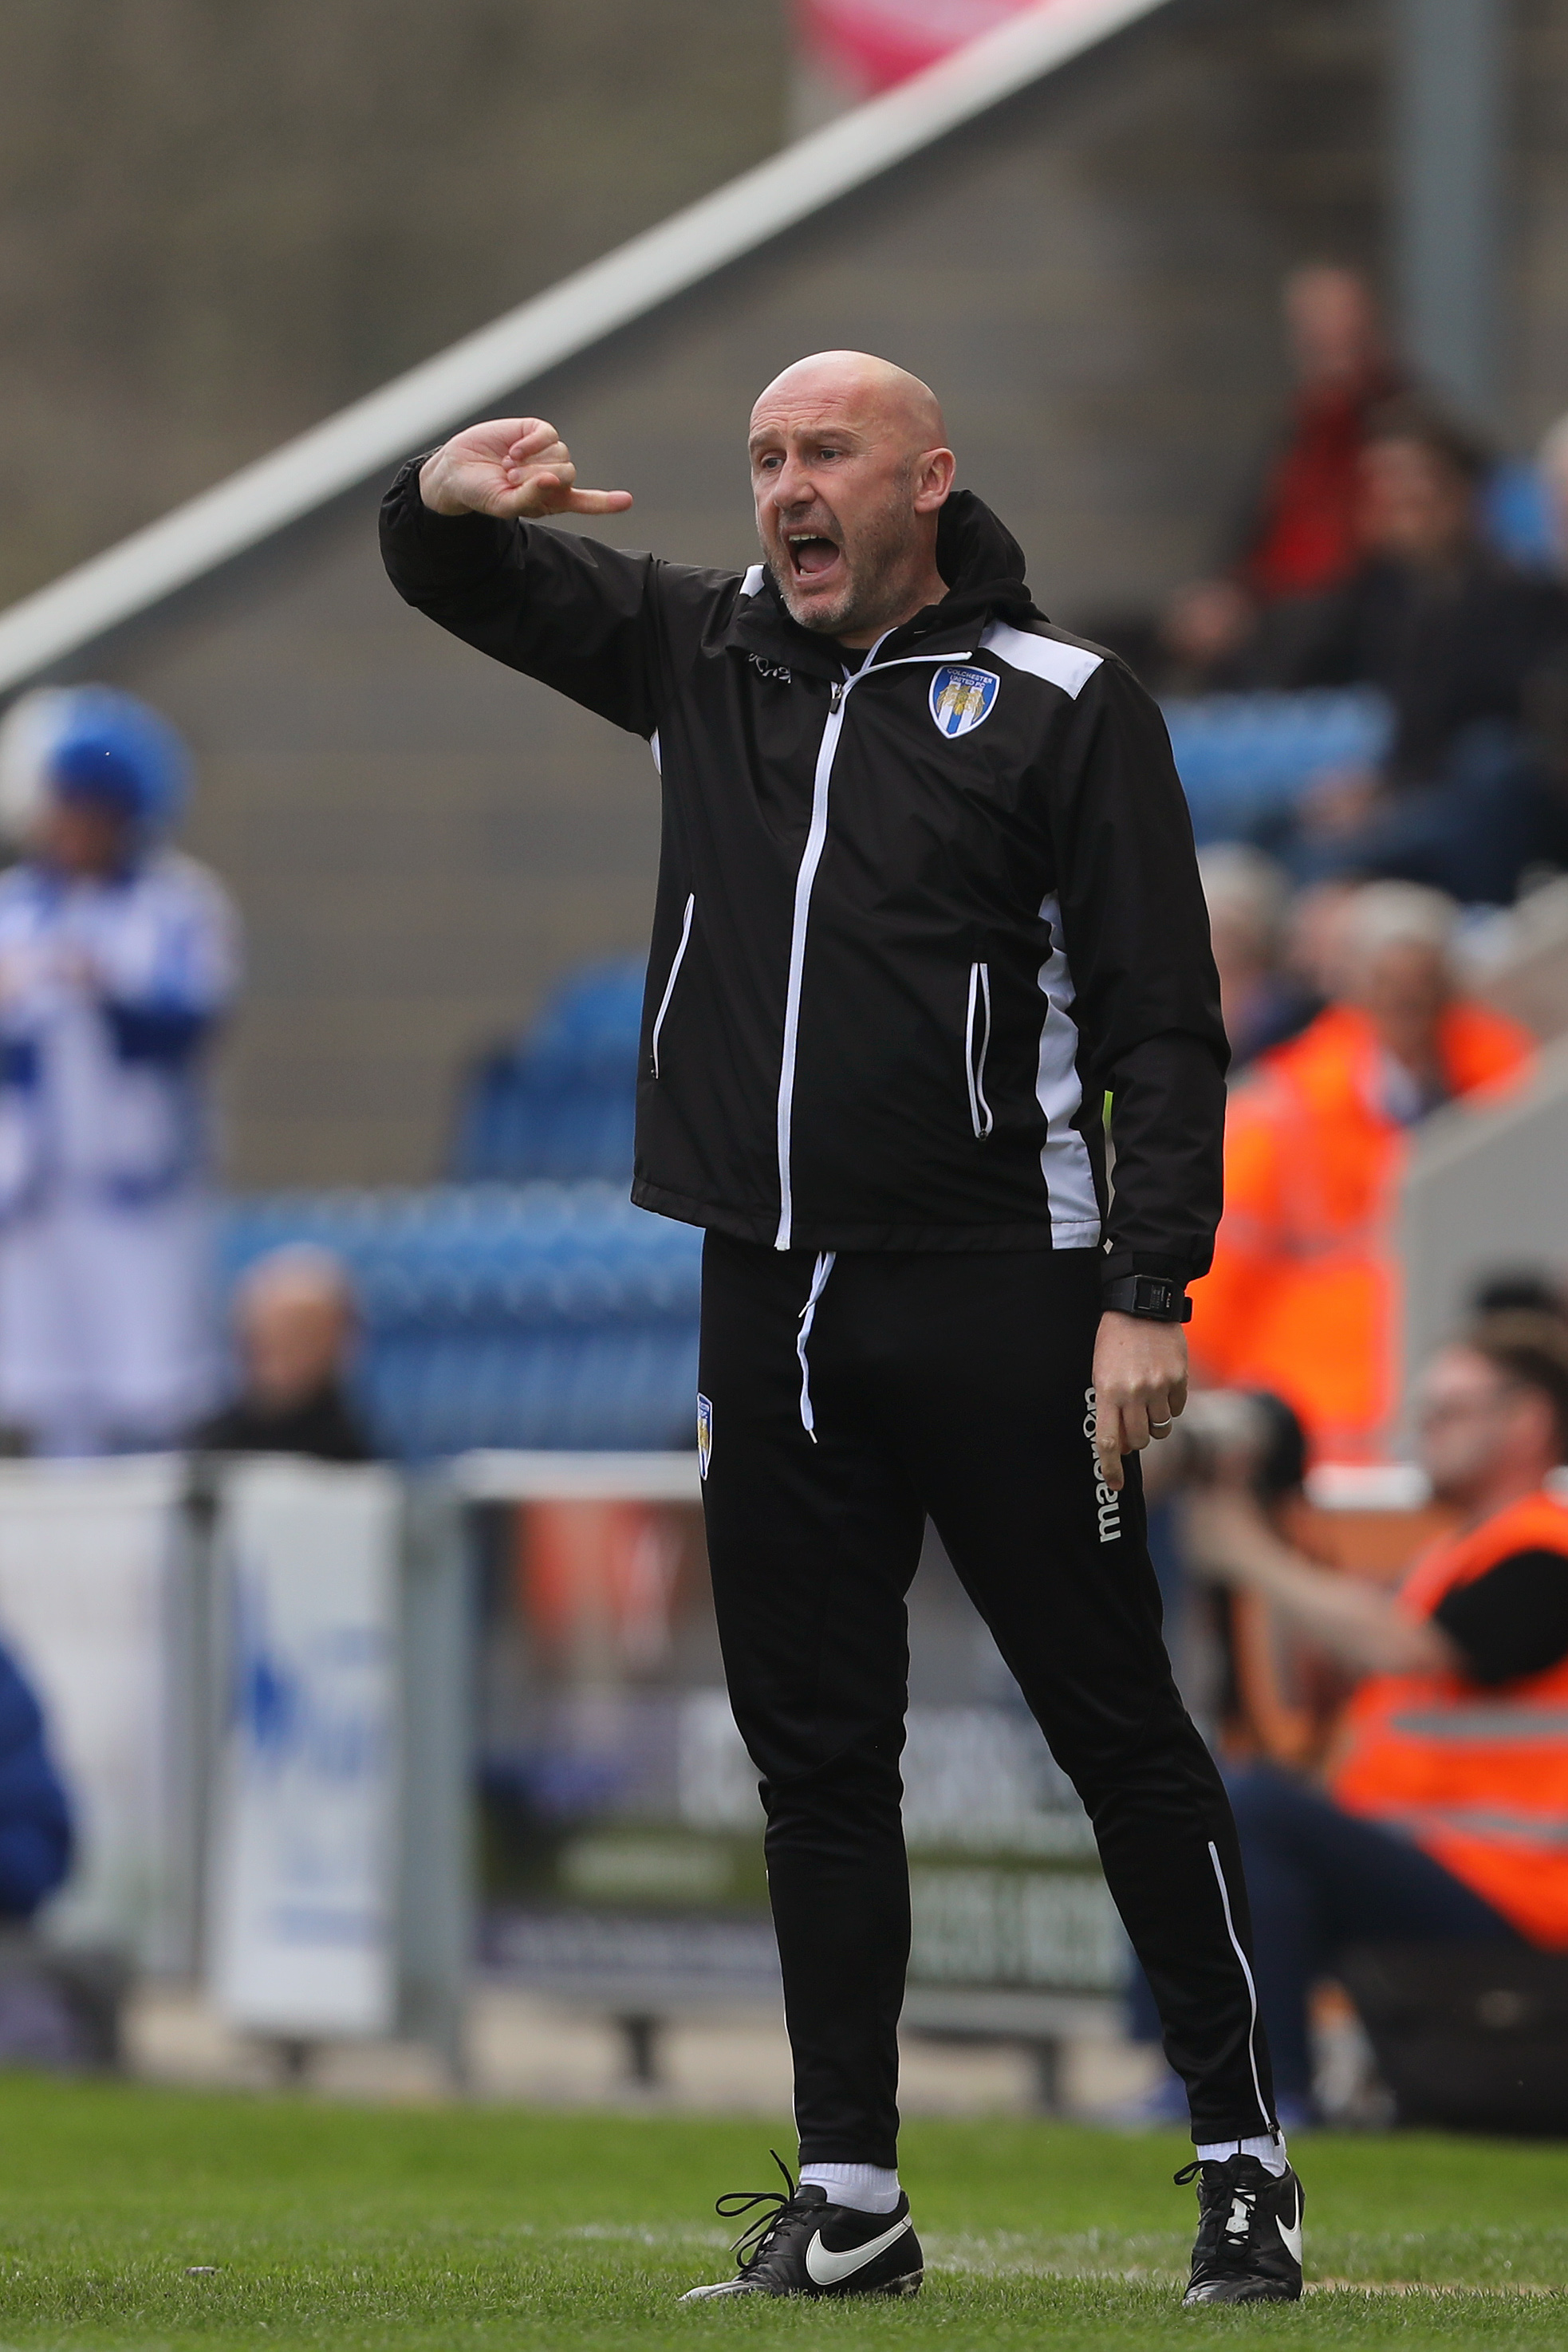 Raring to go - Colchester United head coach John McGreal is already looking forward to his side's start to the season Picture: RICHARD CALVER